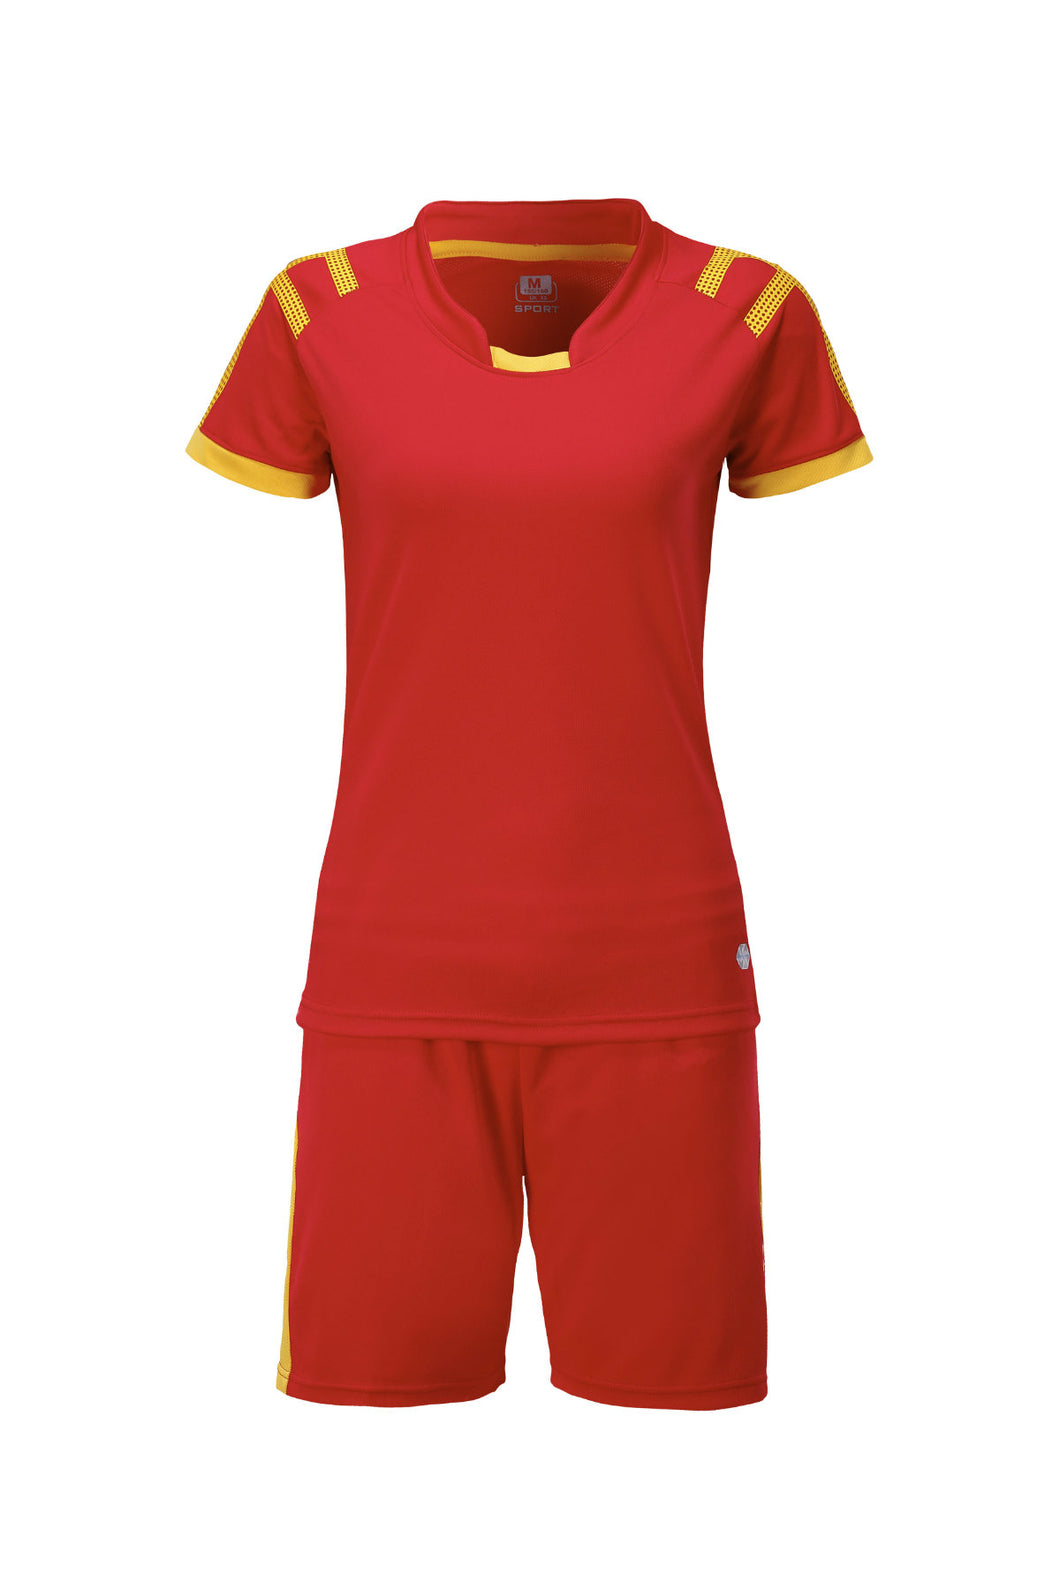 Full Football Kit -  Red with Yellow Trim